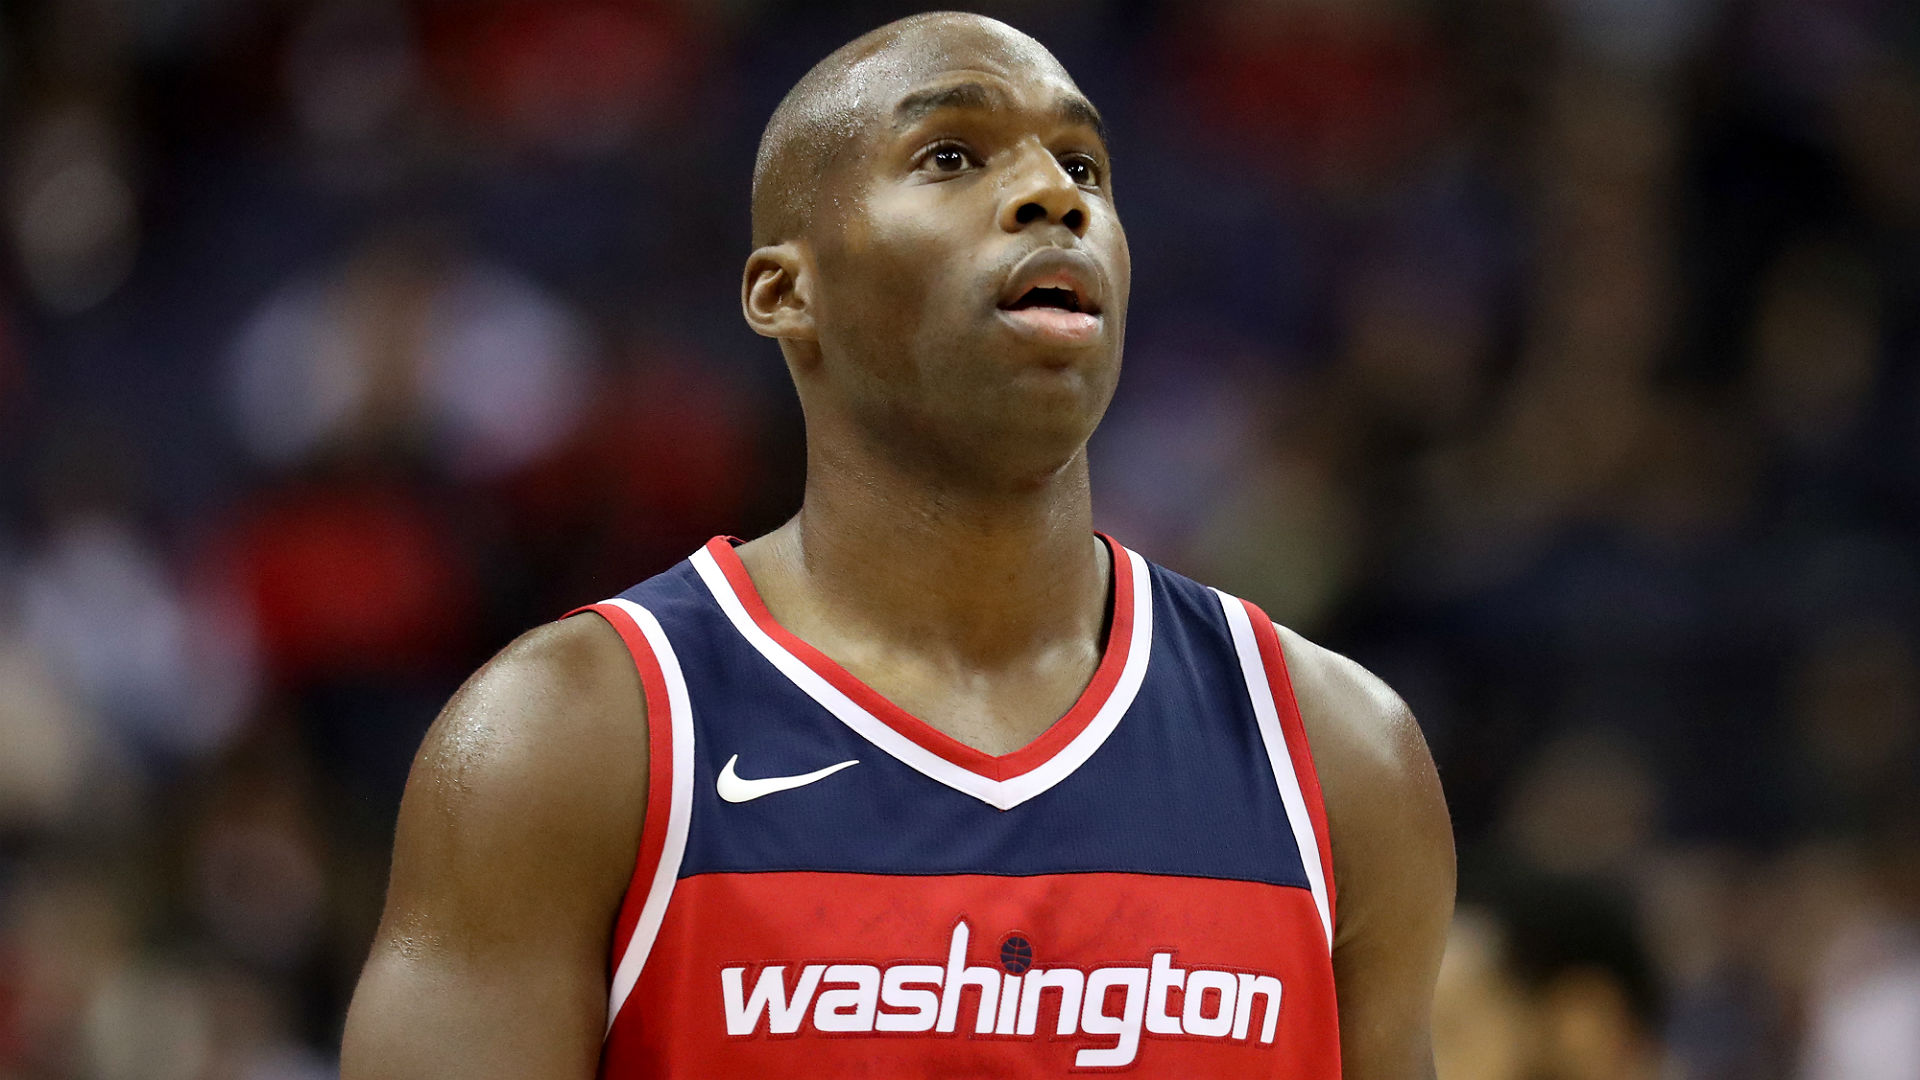 Jodie Meeks signing 10-day contract with the Raptors